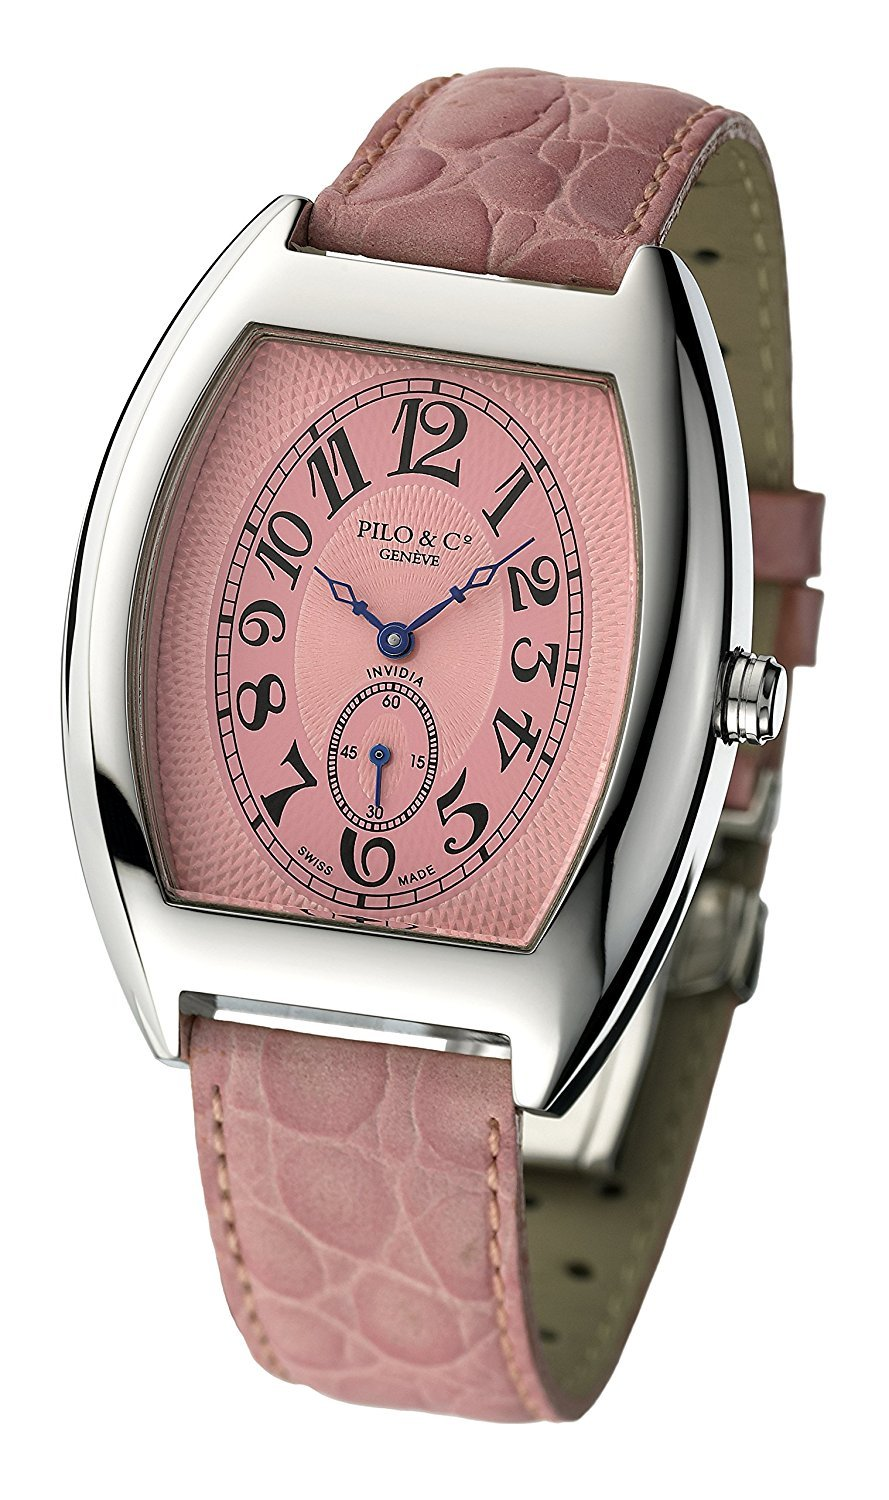 Pilo & Co Geneva Swiss Quartz Invidia Women's Watch collection P0025HQS